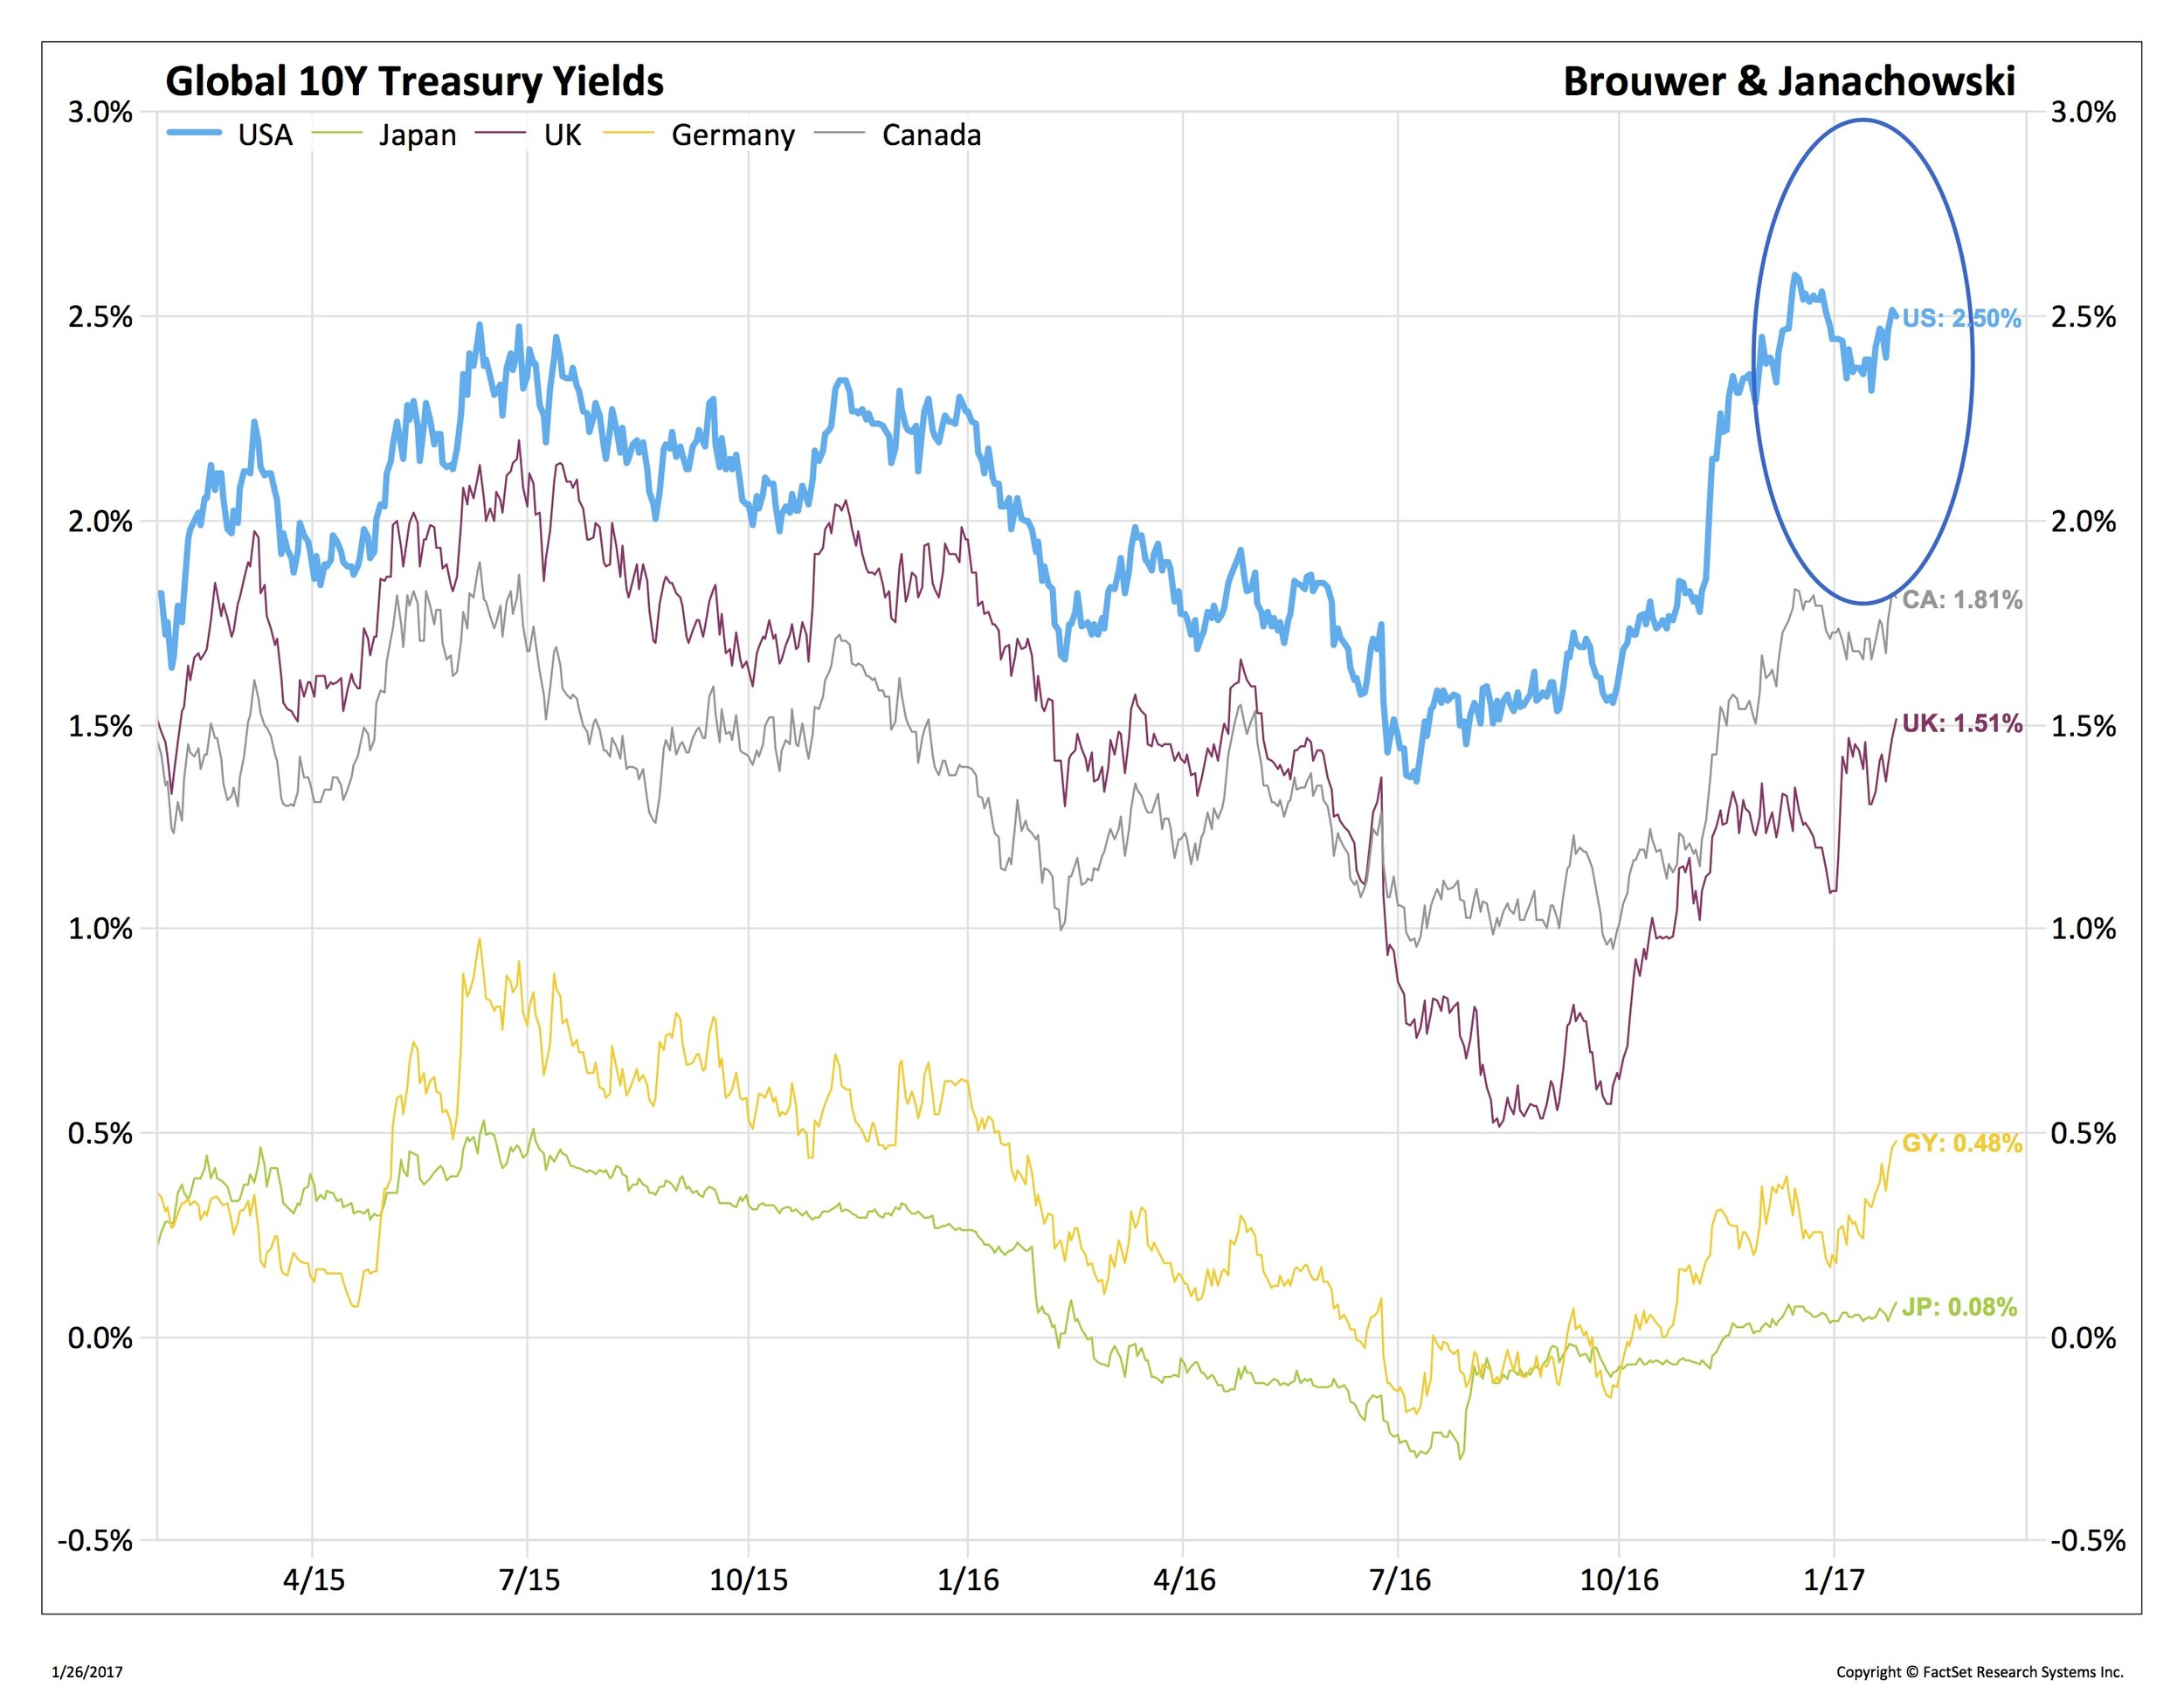 Global 10Y Treasury Yields